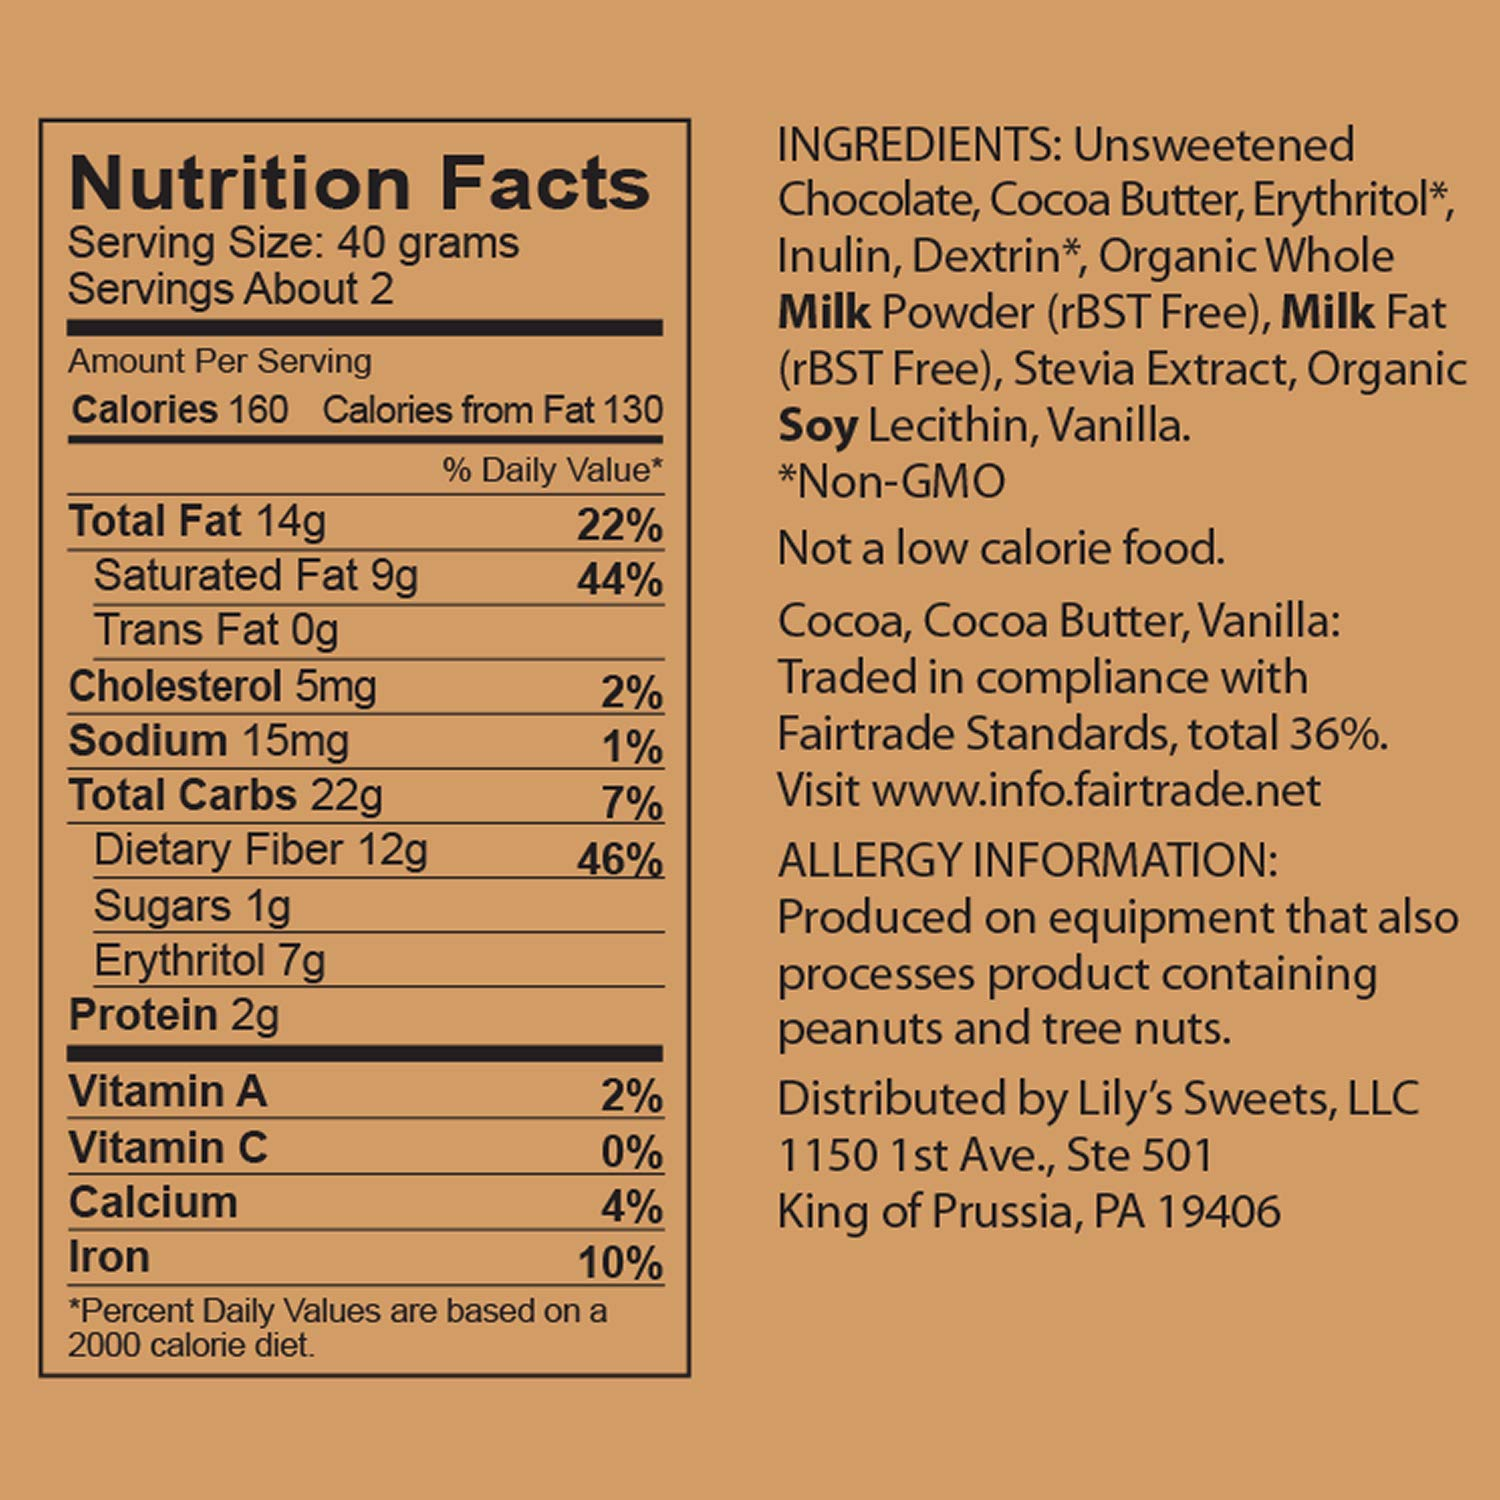 Creamy Milk Chocolate Bar by Lily's Sweets   Stevia Sweetened, No Added Sugar, Low-Carb, Keto Friendly   40% Cacao   Fair Trade, Gluten-Free & Non-GMO   3 ounce, 4-Pack by Lily's (Image #3)